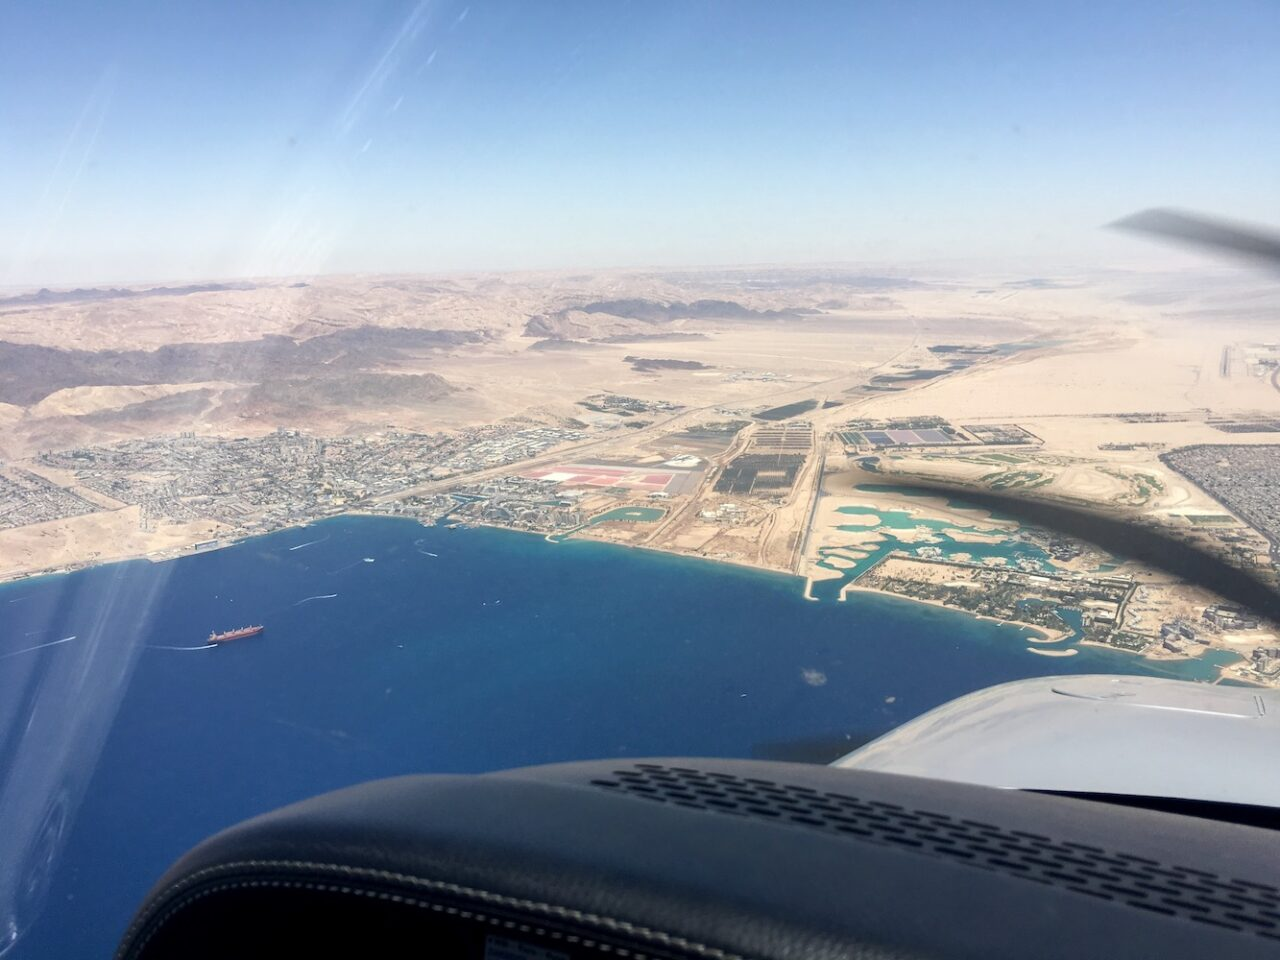 Jordan – Isreal – Egypt – Saudi – All together at the tip of the Red Sea